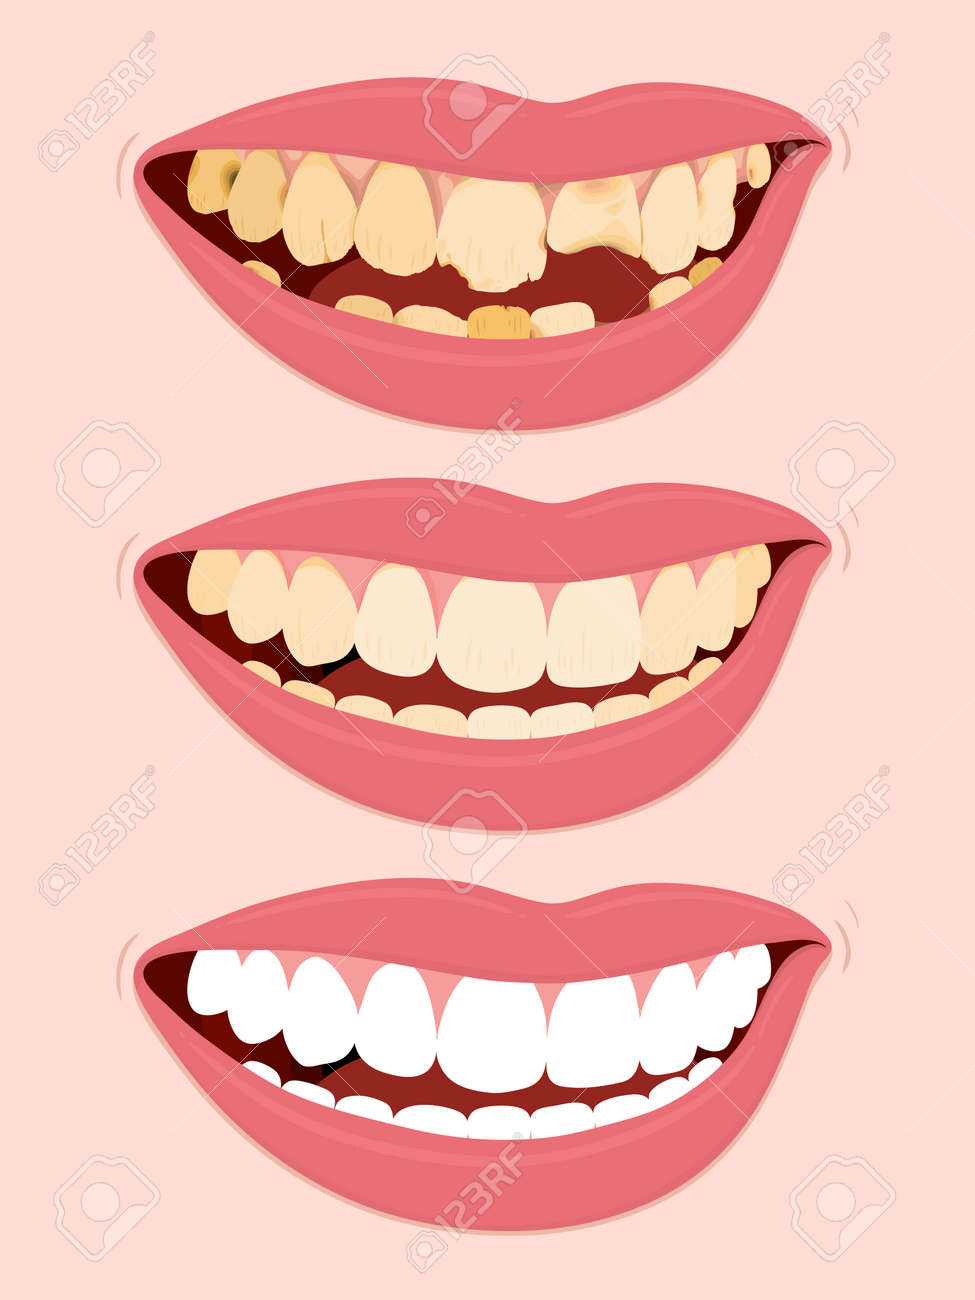 Progressive Stages Of Tooth Decay, illustration of open female